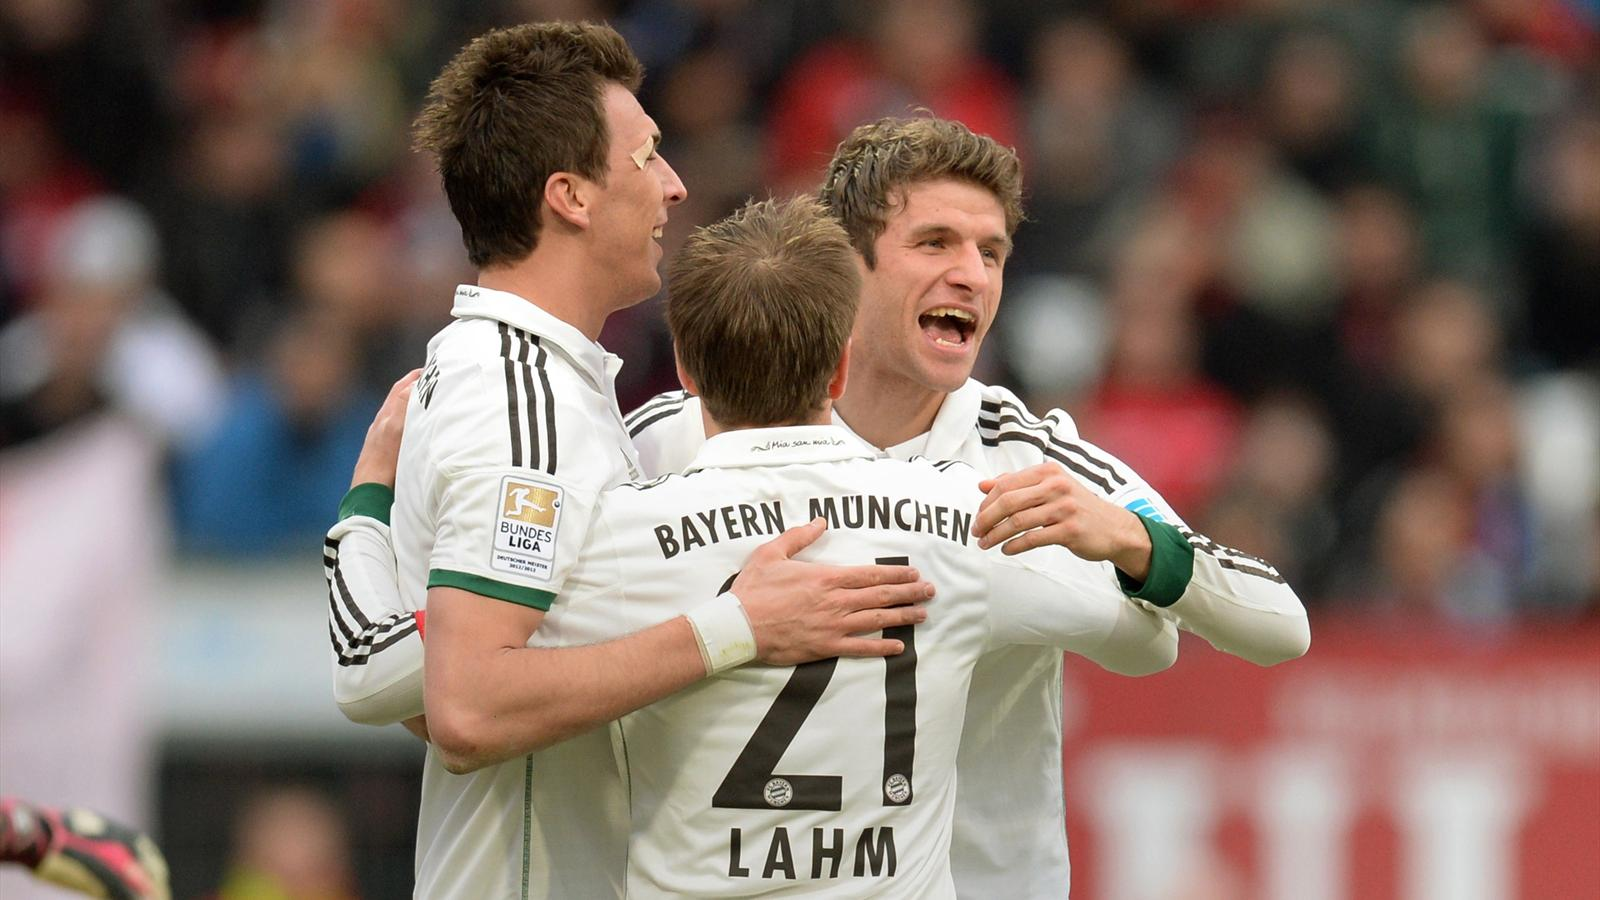 Bayern Munich's Croatian striker Mario Mandzukic, defender Philipp Lahm and striker Thomas Mueller celebrate (AFP)